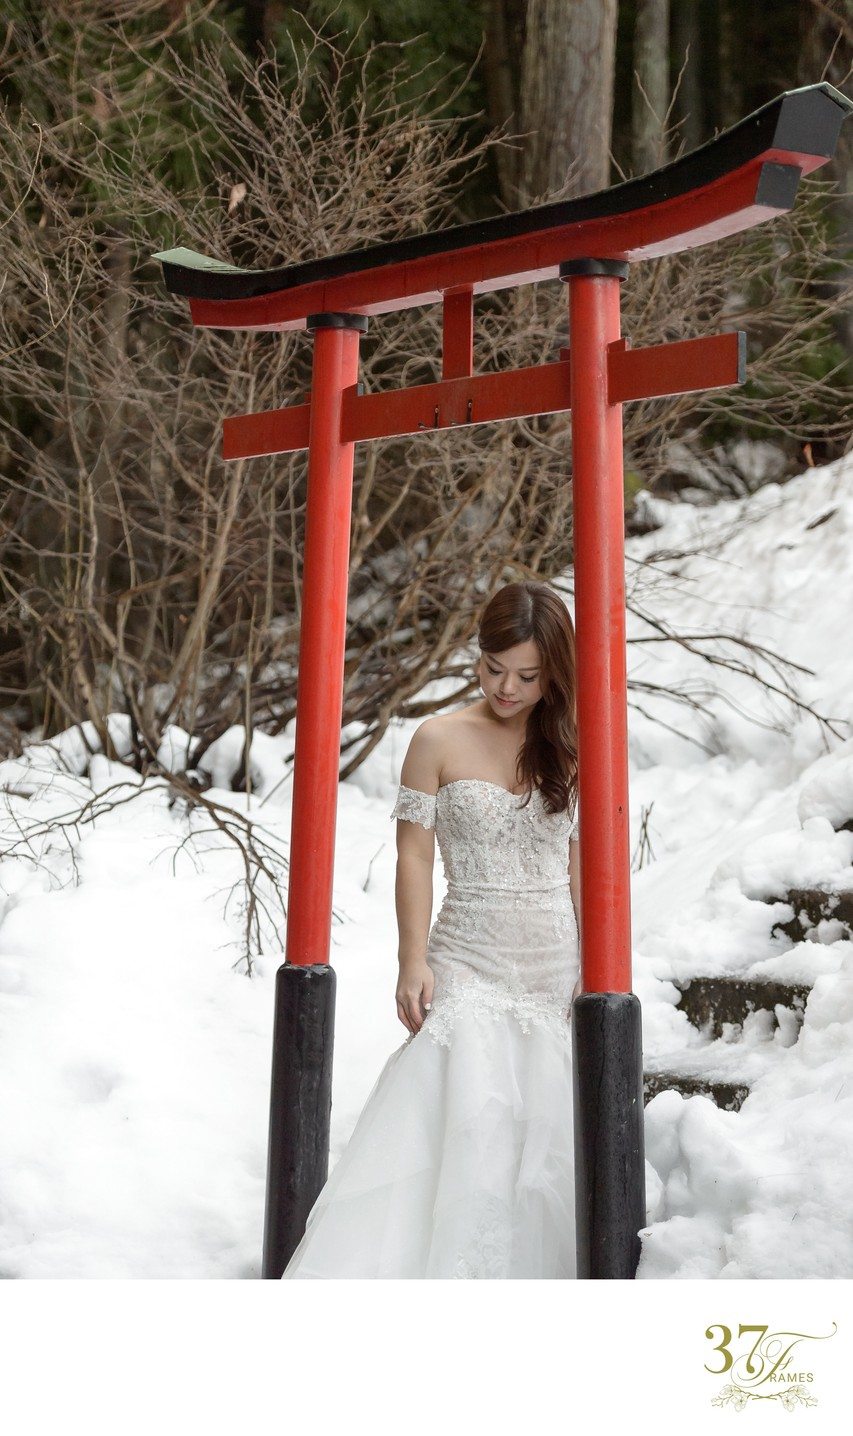 Elope in the Snow in Japan